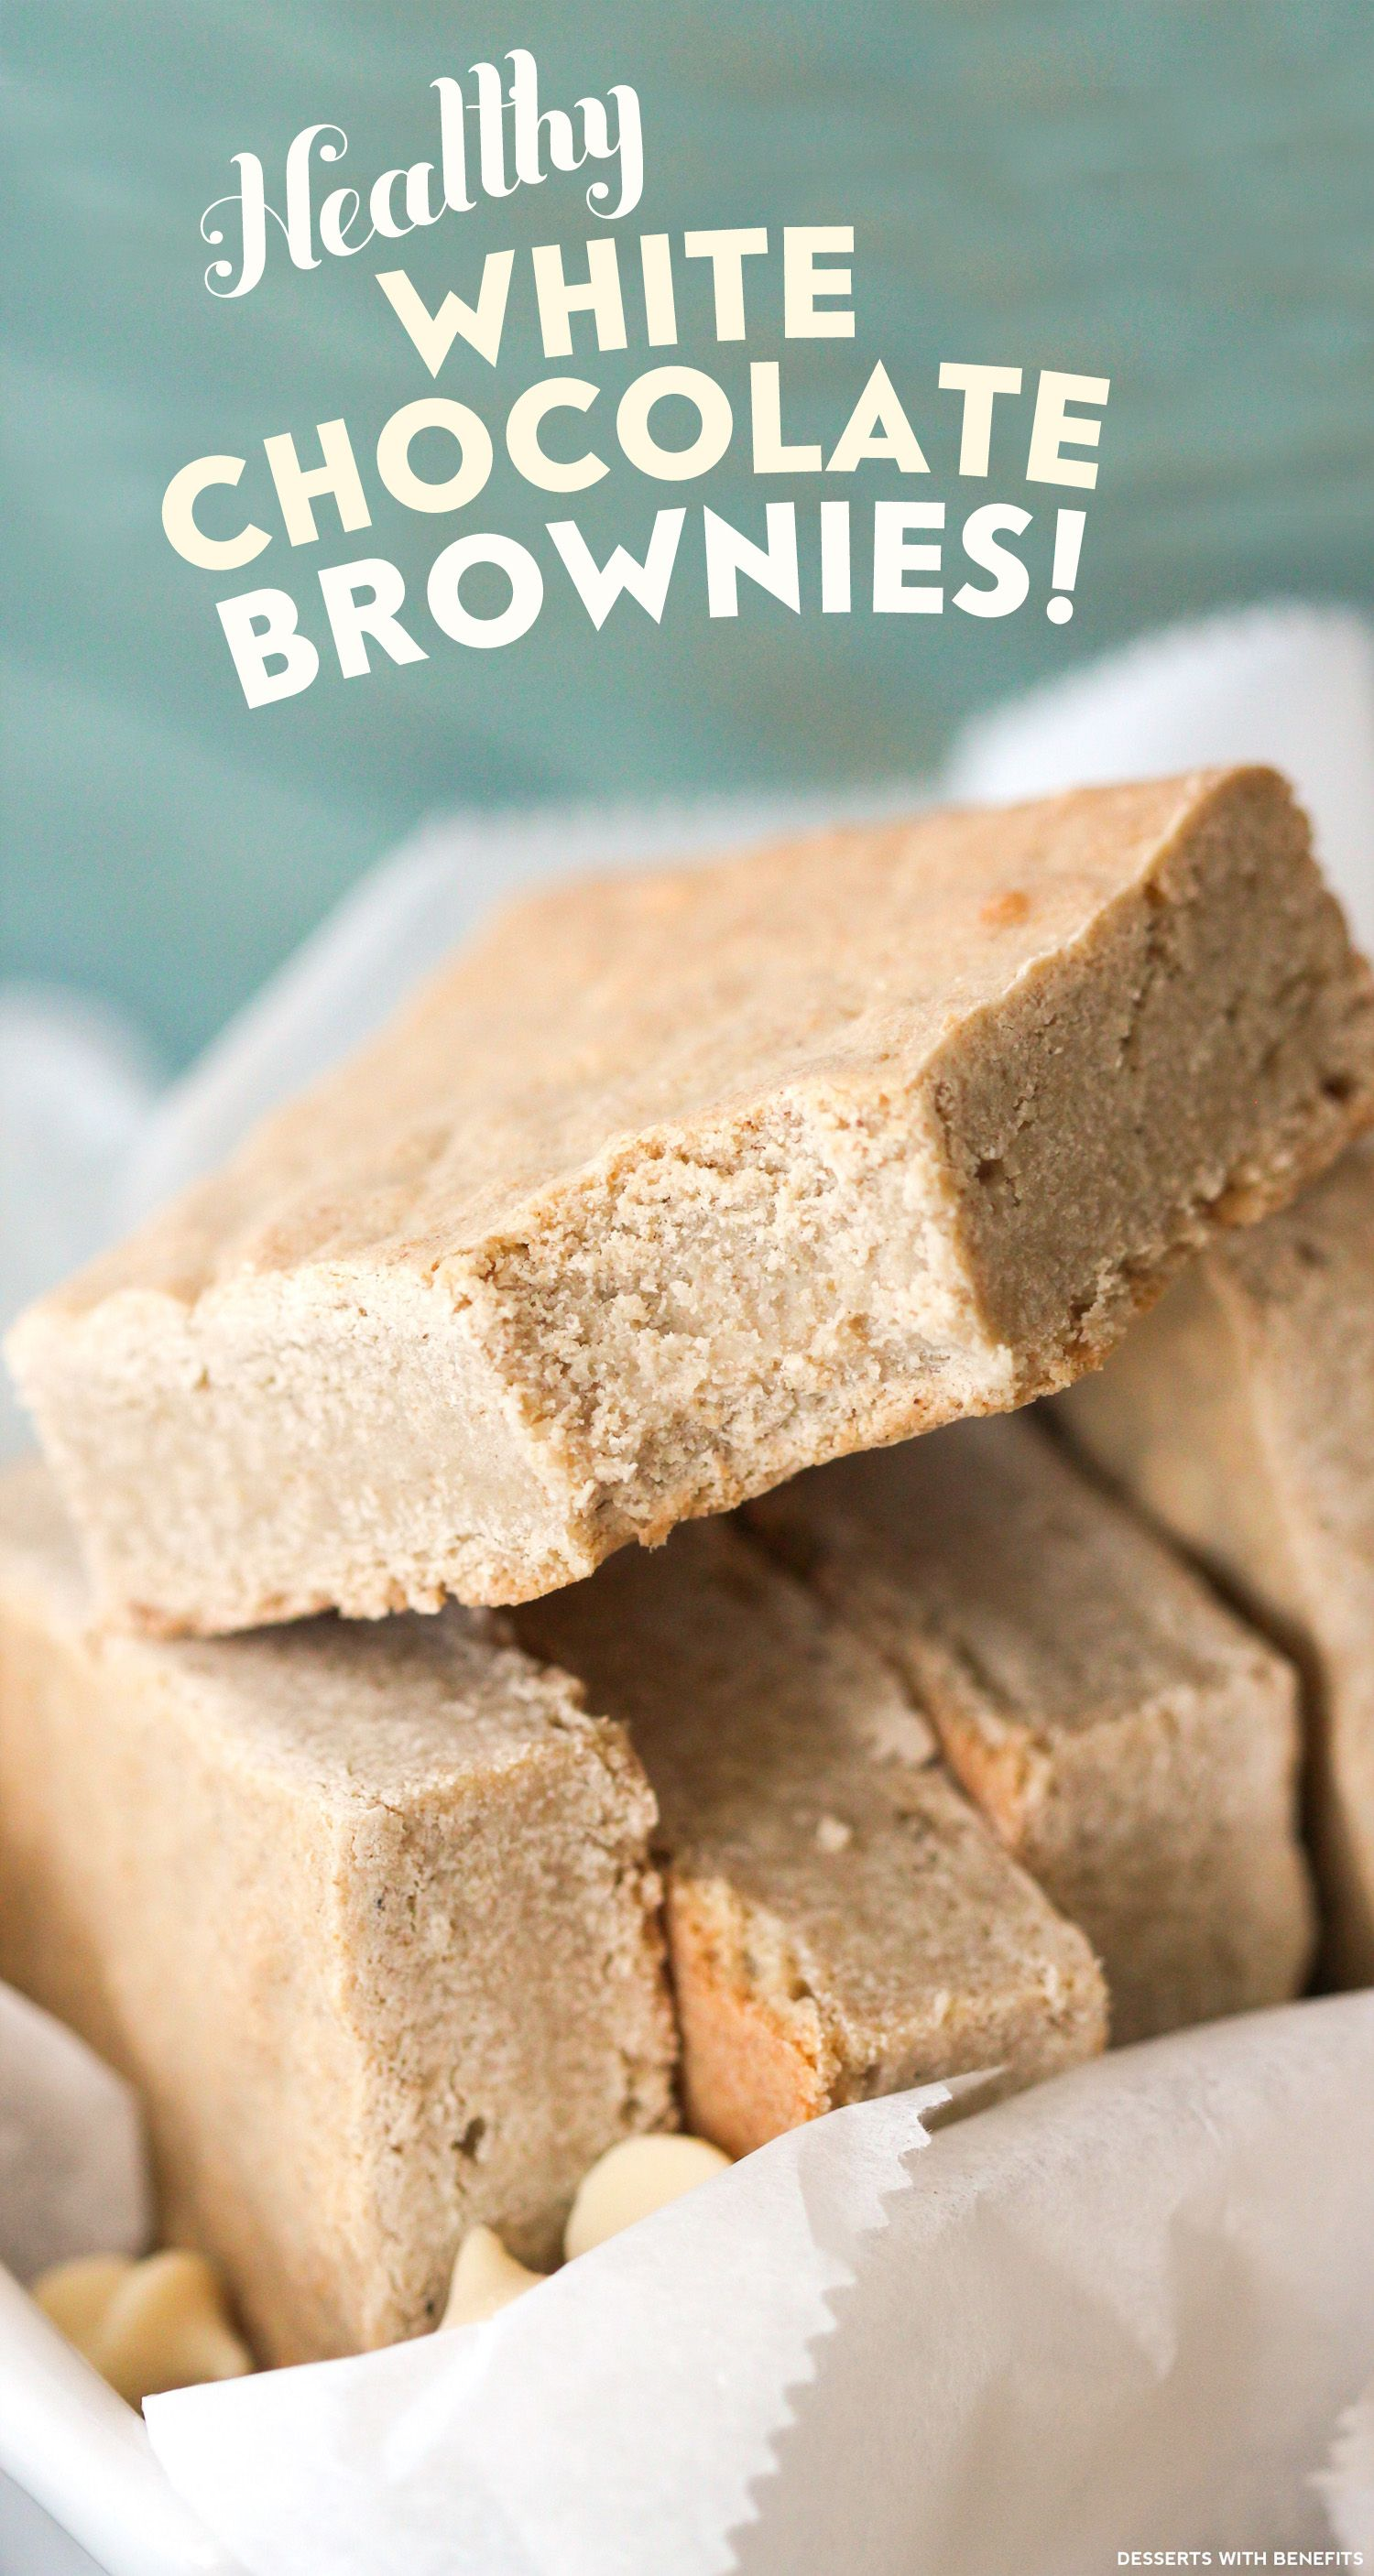 Healthy White Chocolate Brownies Or Blondies Desserts With Benefits Recipe White Chocolate Brownies Chocolate Brownies Healthy Dessert Recipes